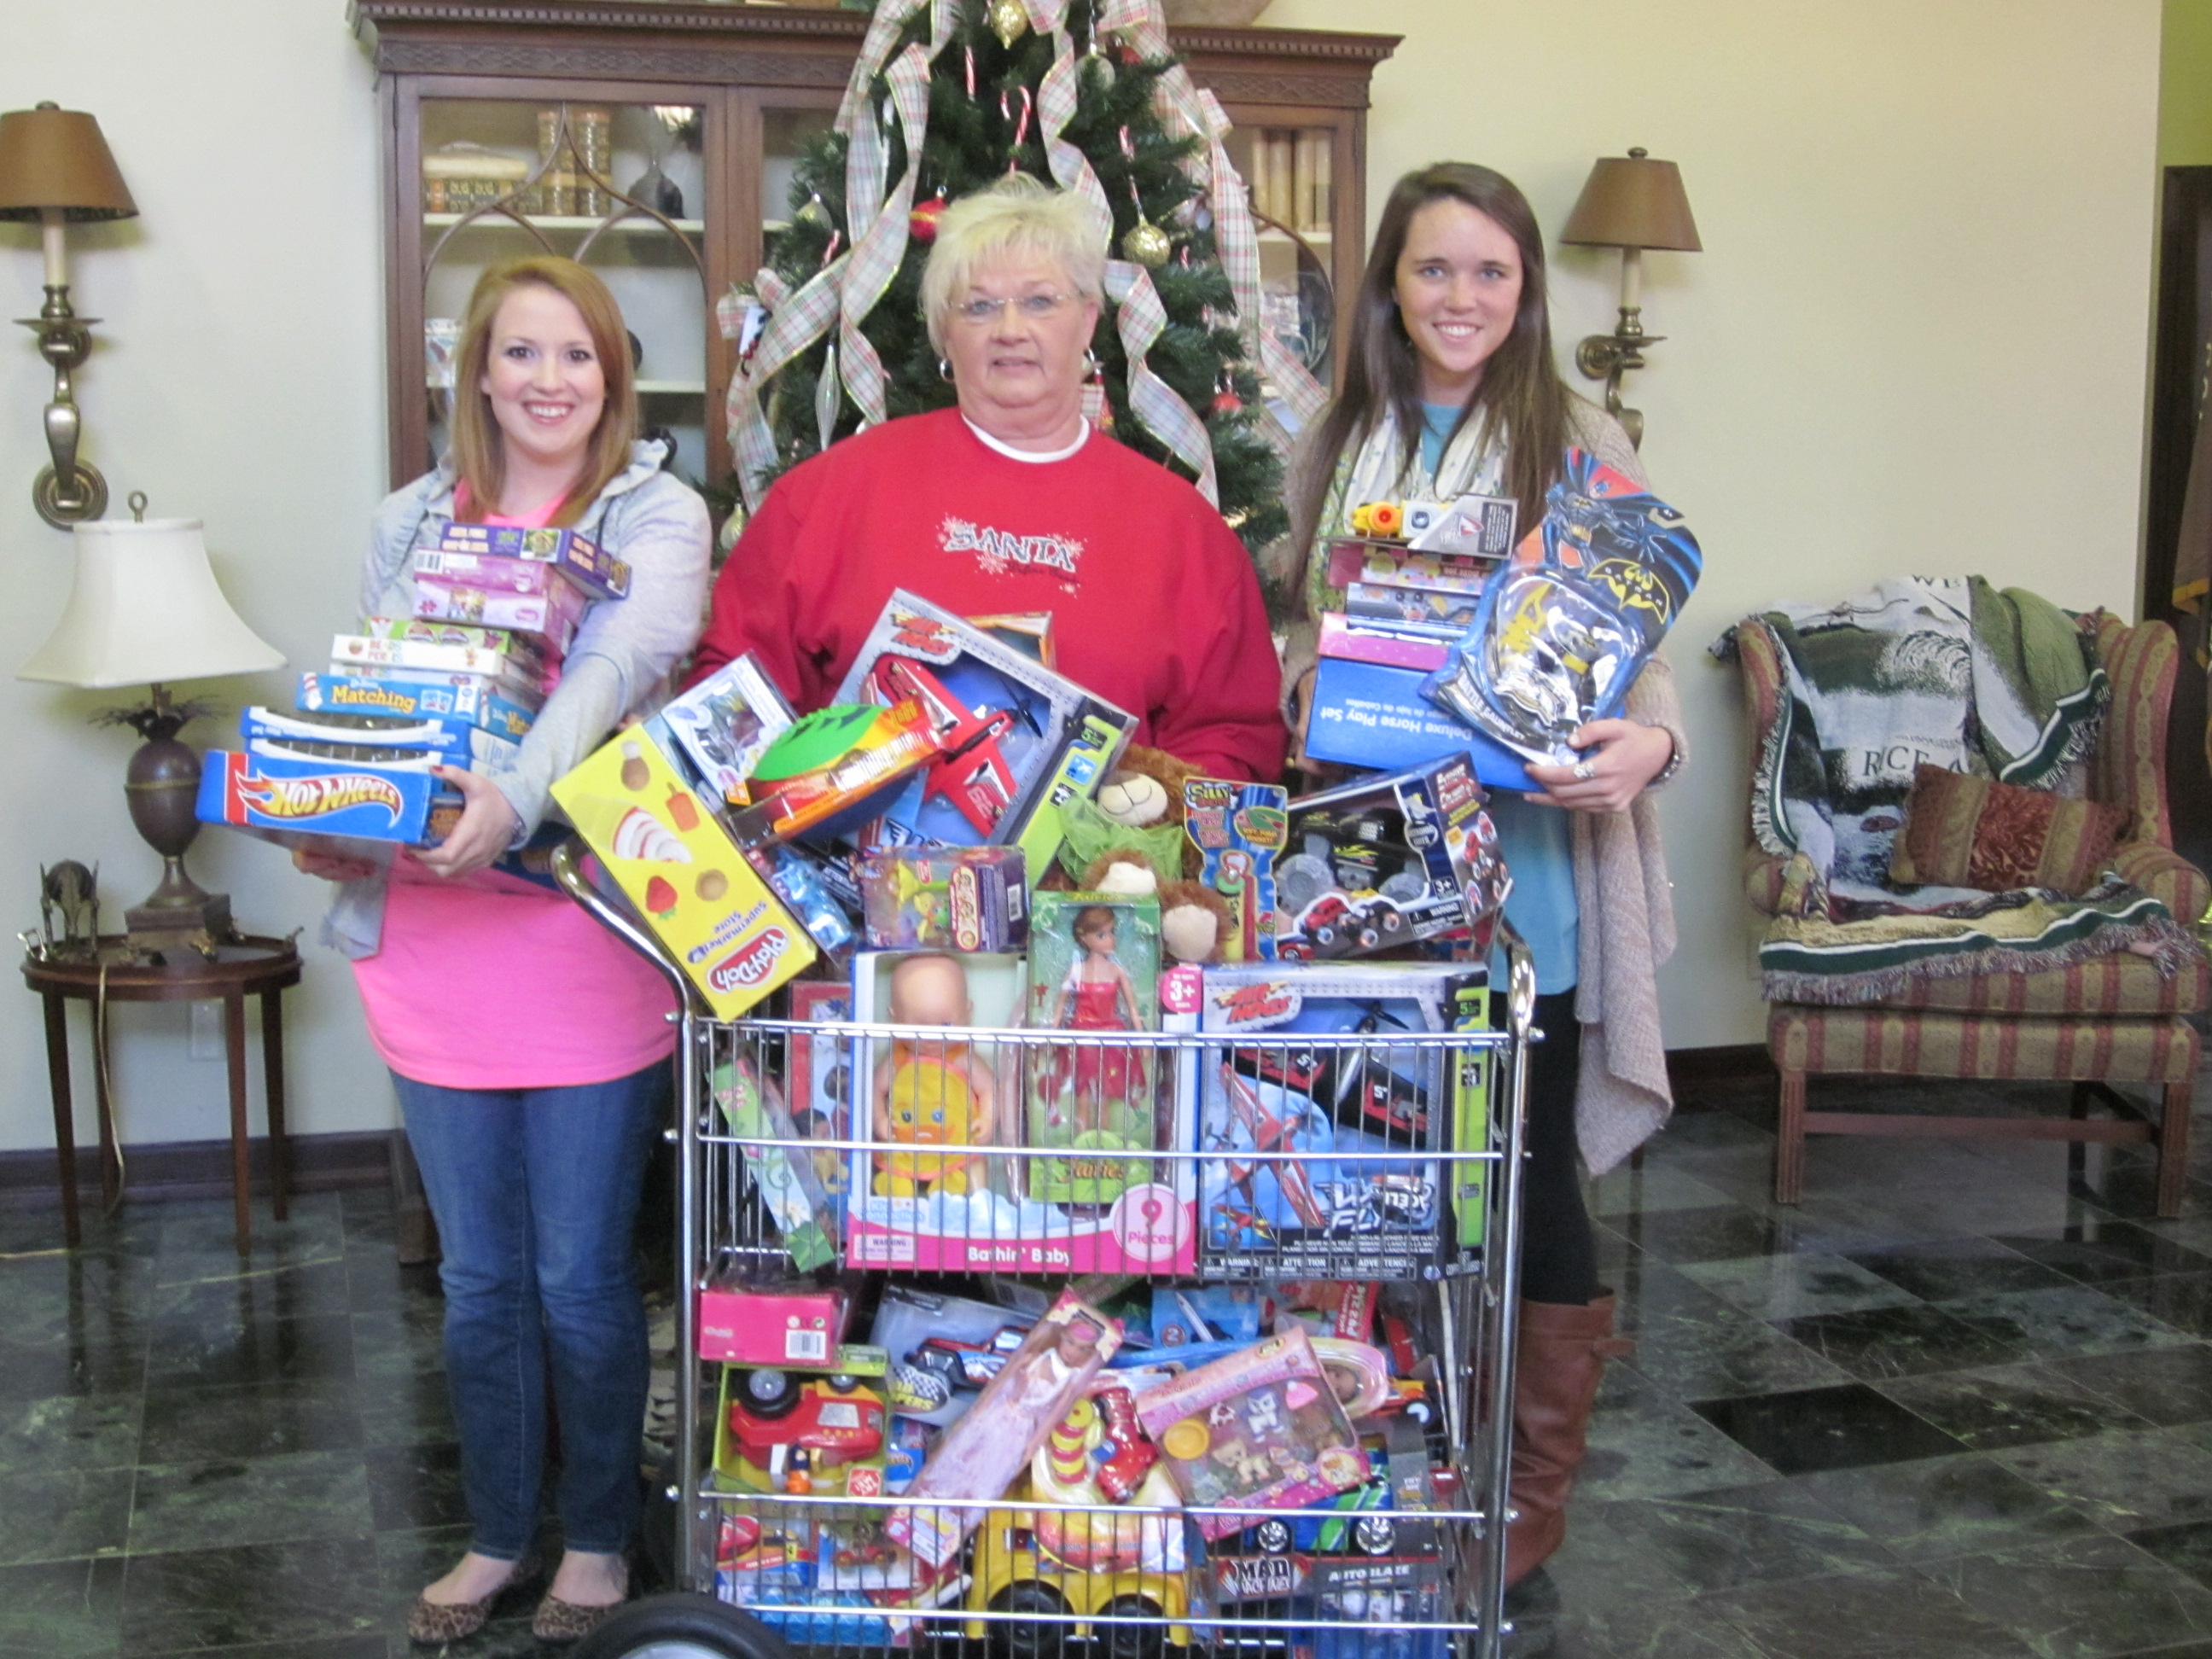 PHOTO:  From left, Amy Scott, Jo Donna Watson, and Shelby McIntire gather the gifts that were donated to the toy drive.